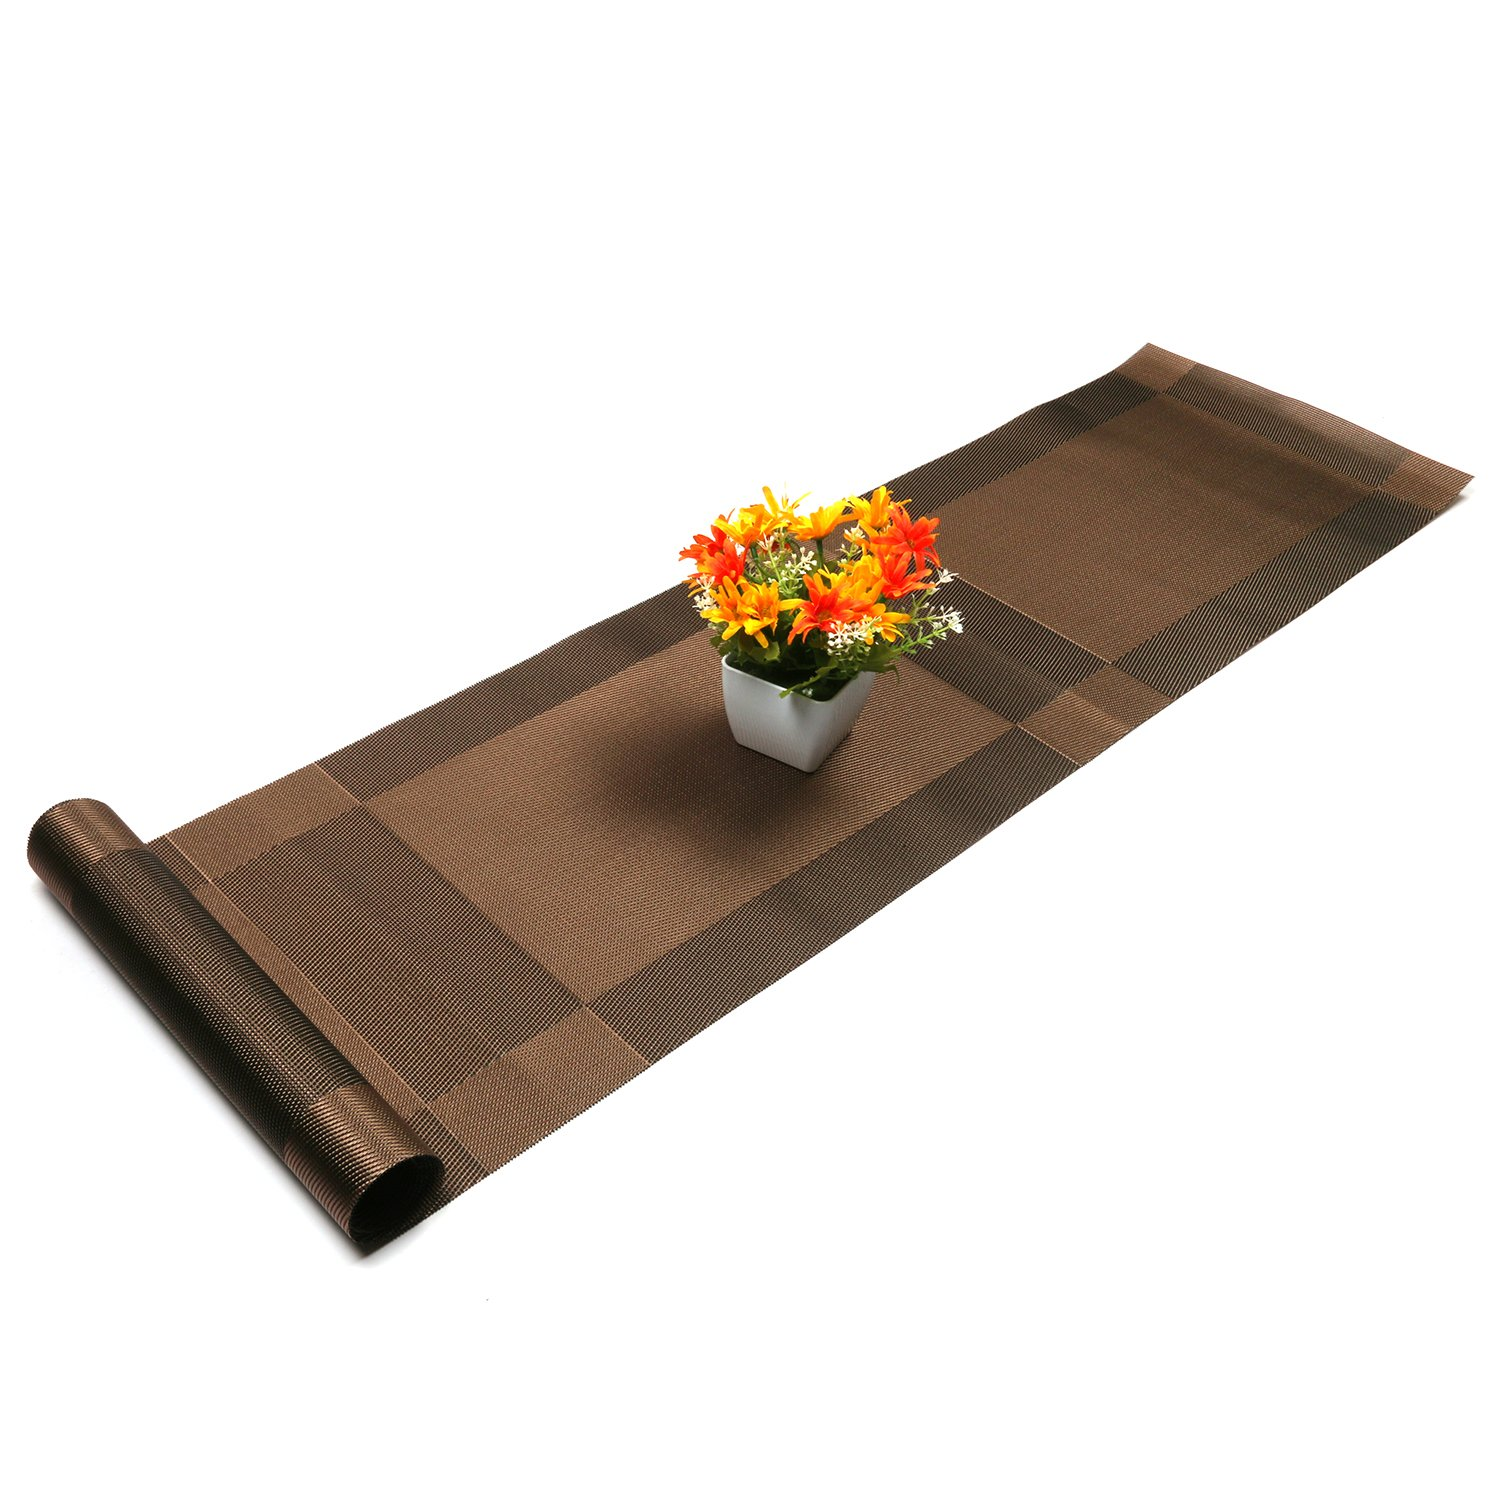 Compatible Placemats table runner,U'artlines 1 piece Crossweave Woven Vinyl Table Runner Washable 30x180cm (Brown, Table runner)